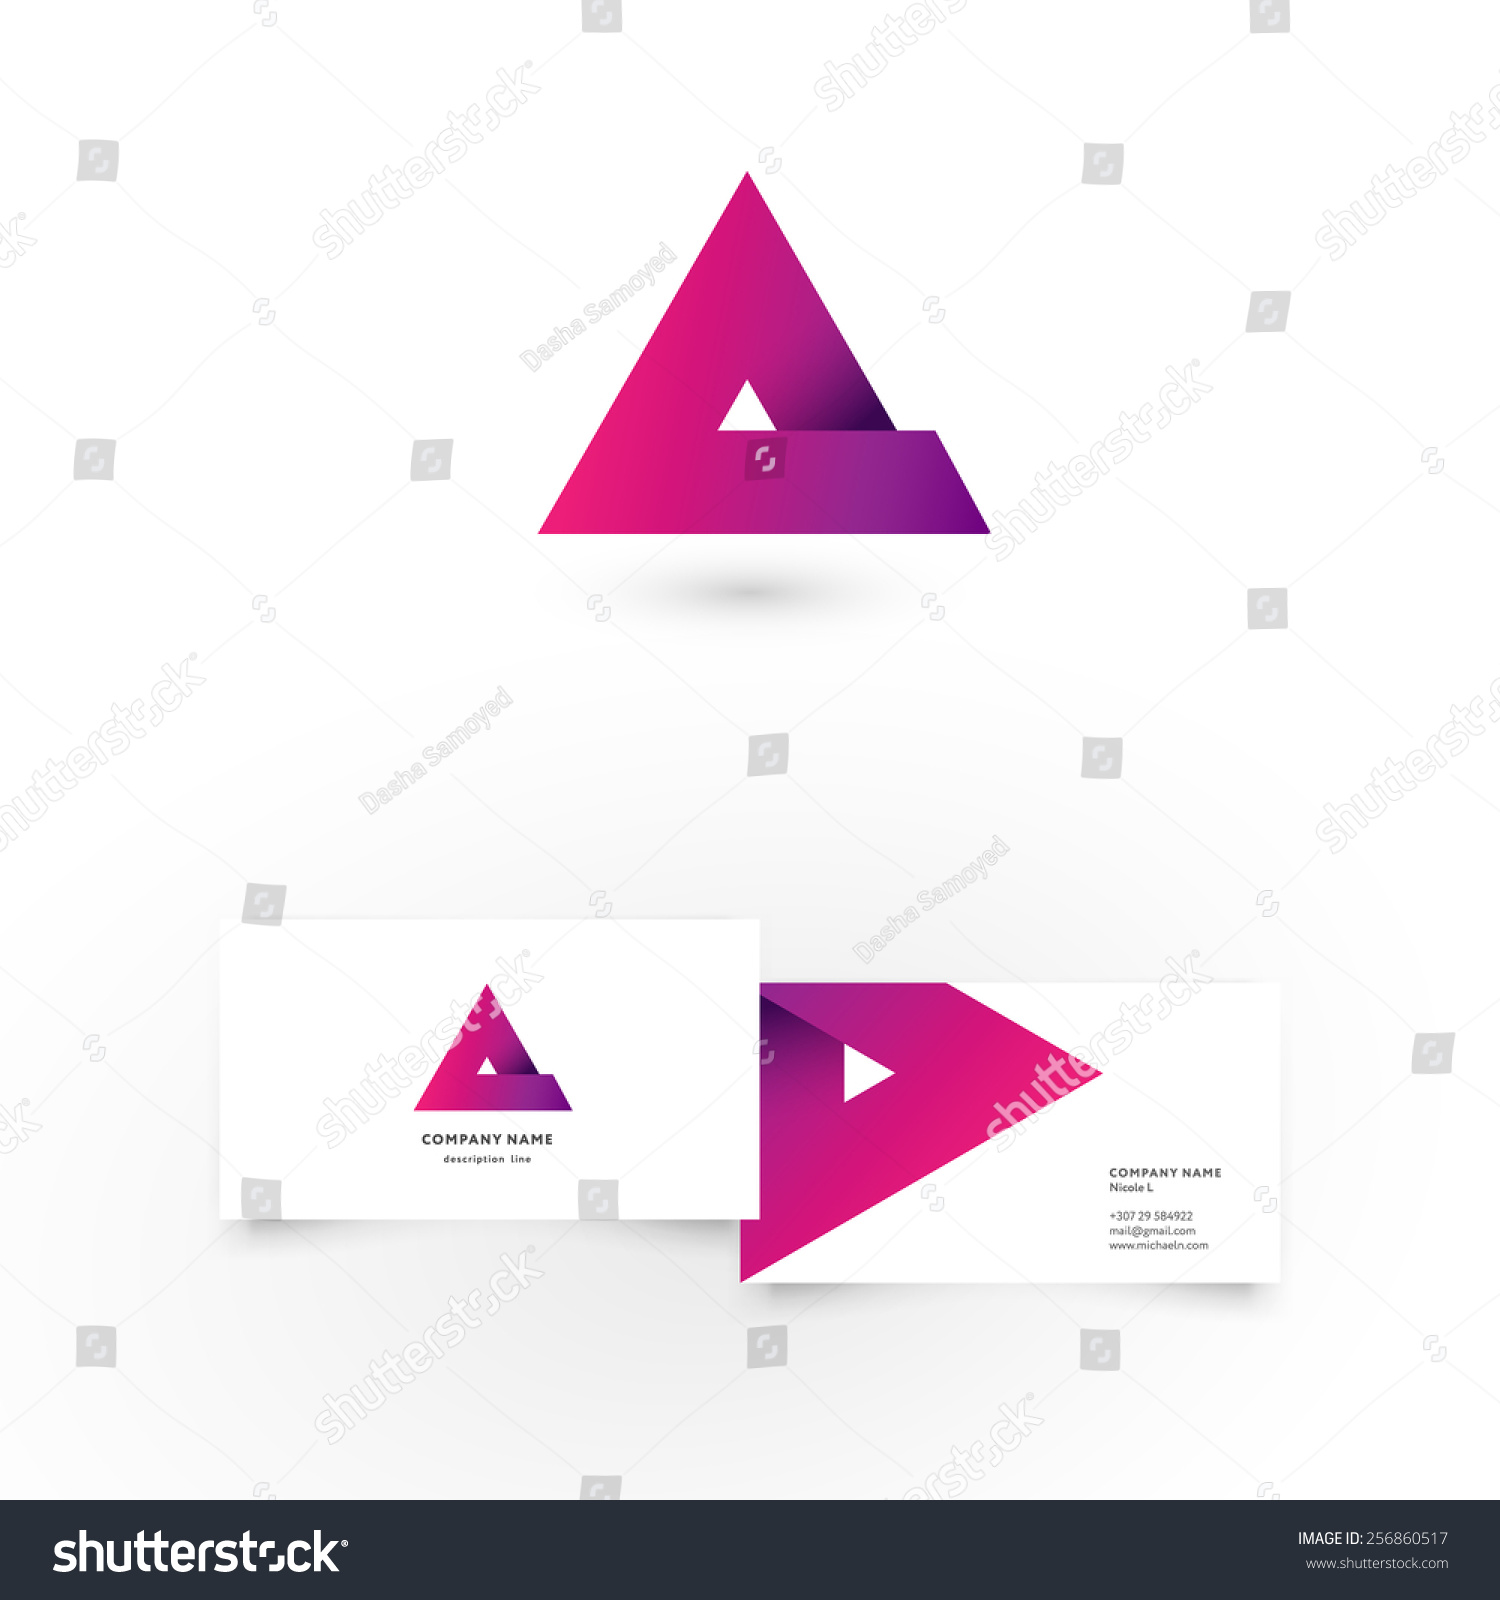 Triangle shaped business cards gallery free business cards triangle shaped business cards gallery free business cards triangle shaped business cards gallery free business cards magicingreecefo Choice Image